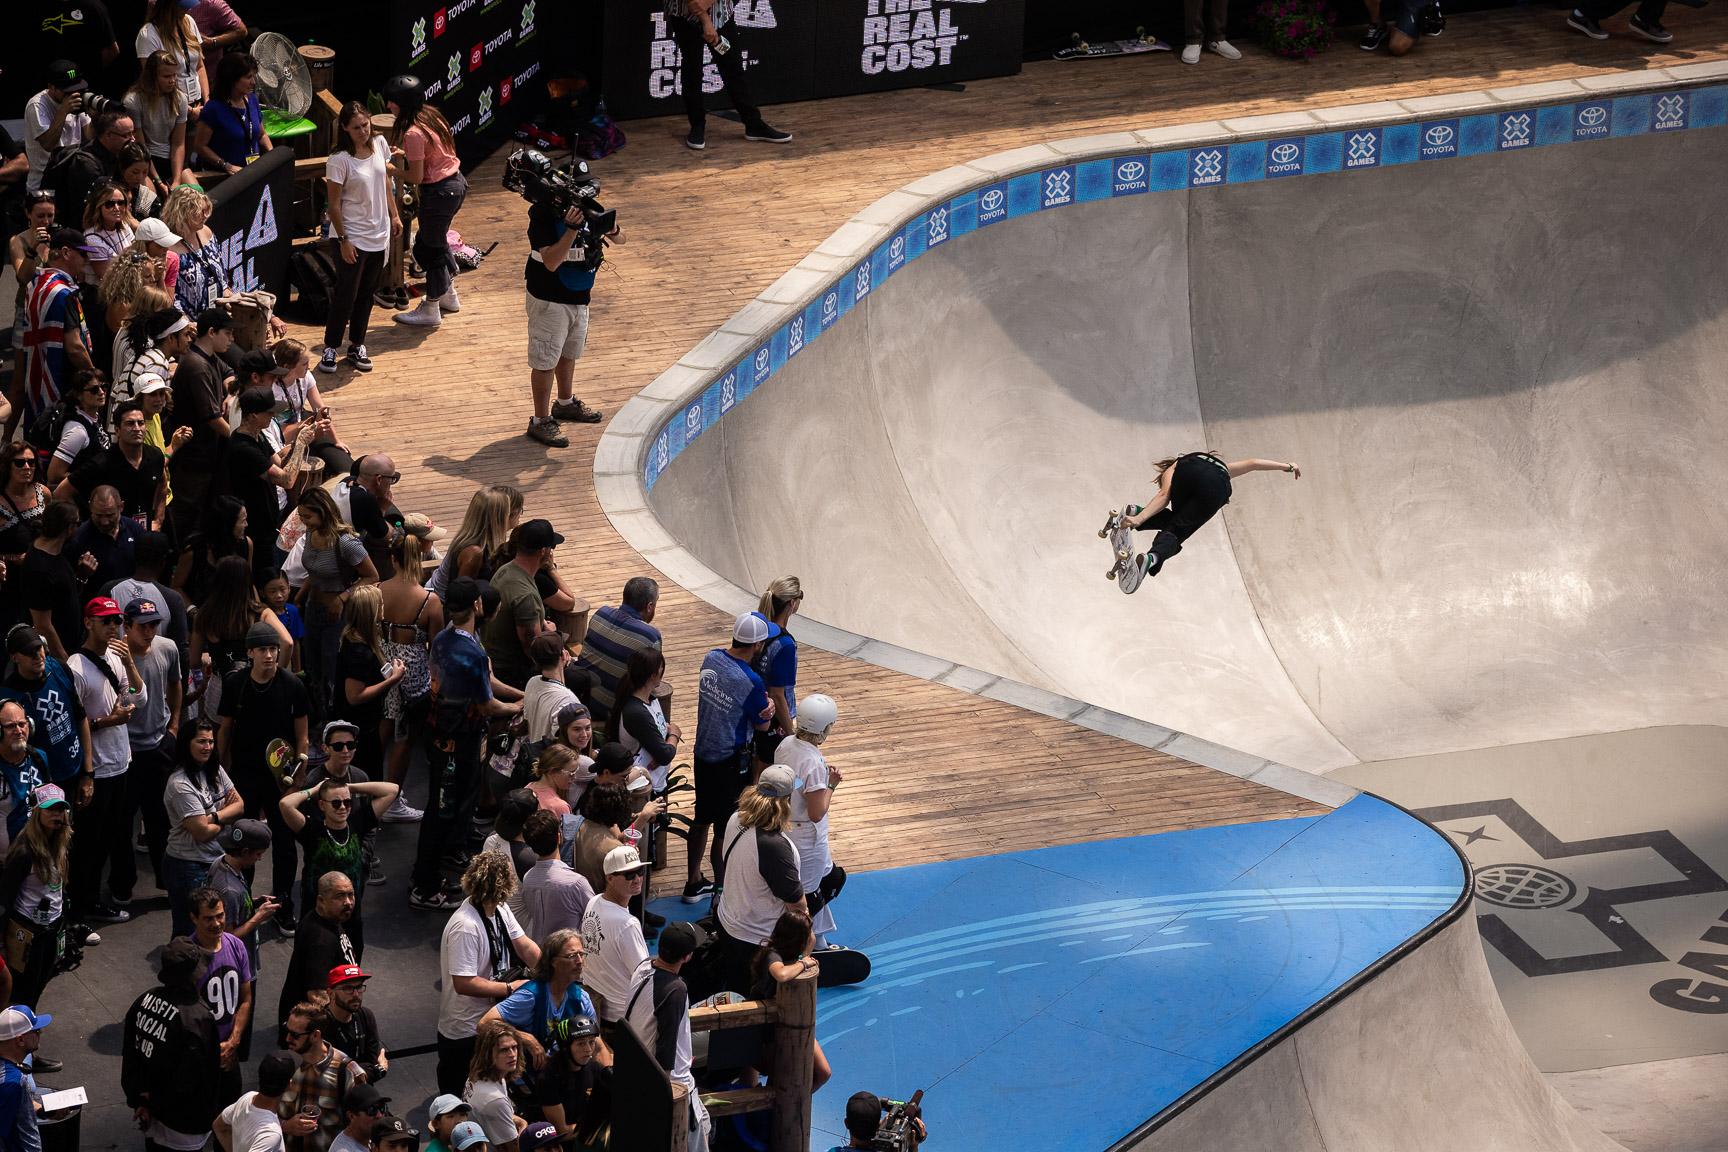 Brighton Zeuner, Skateboard Park final